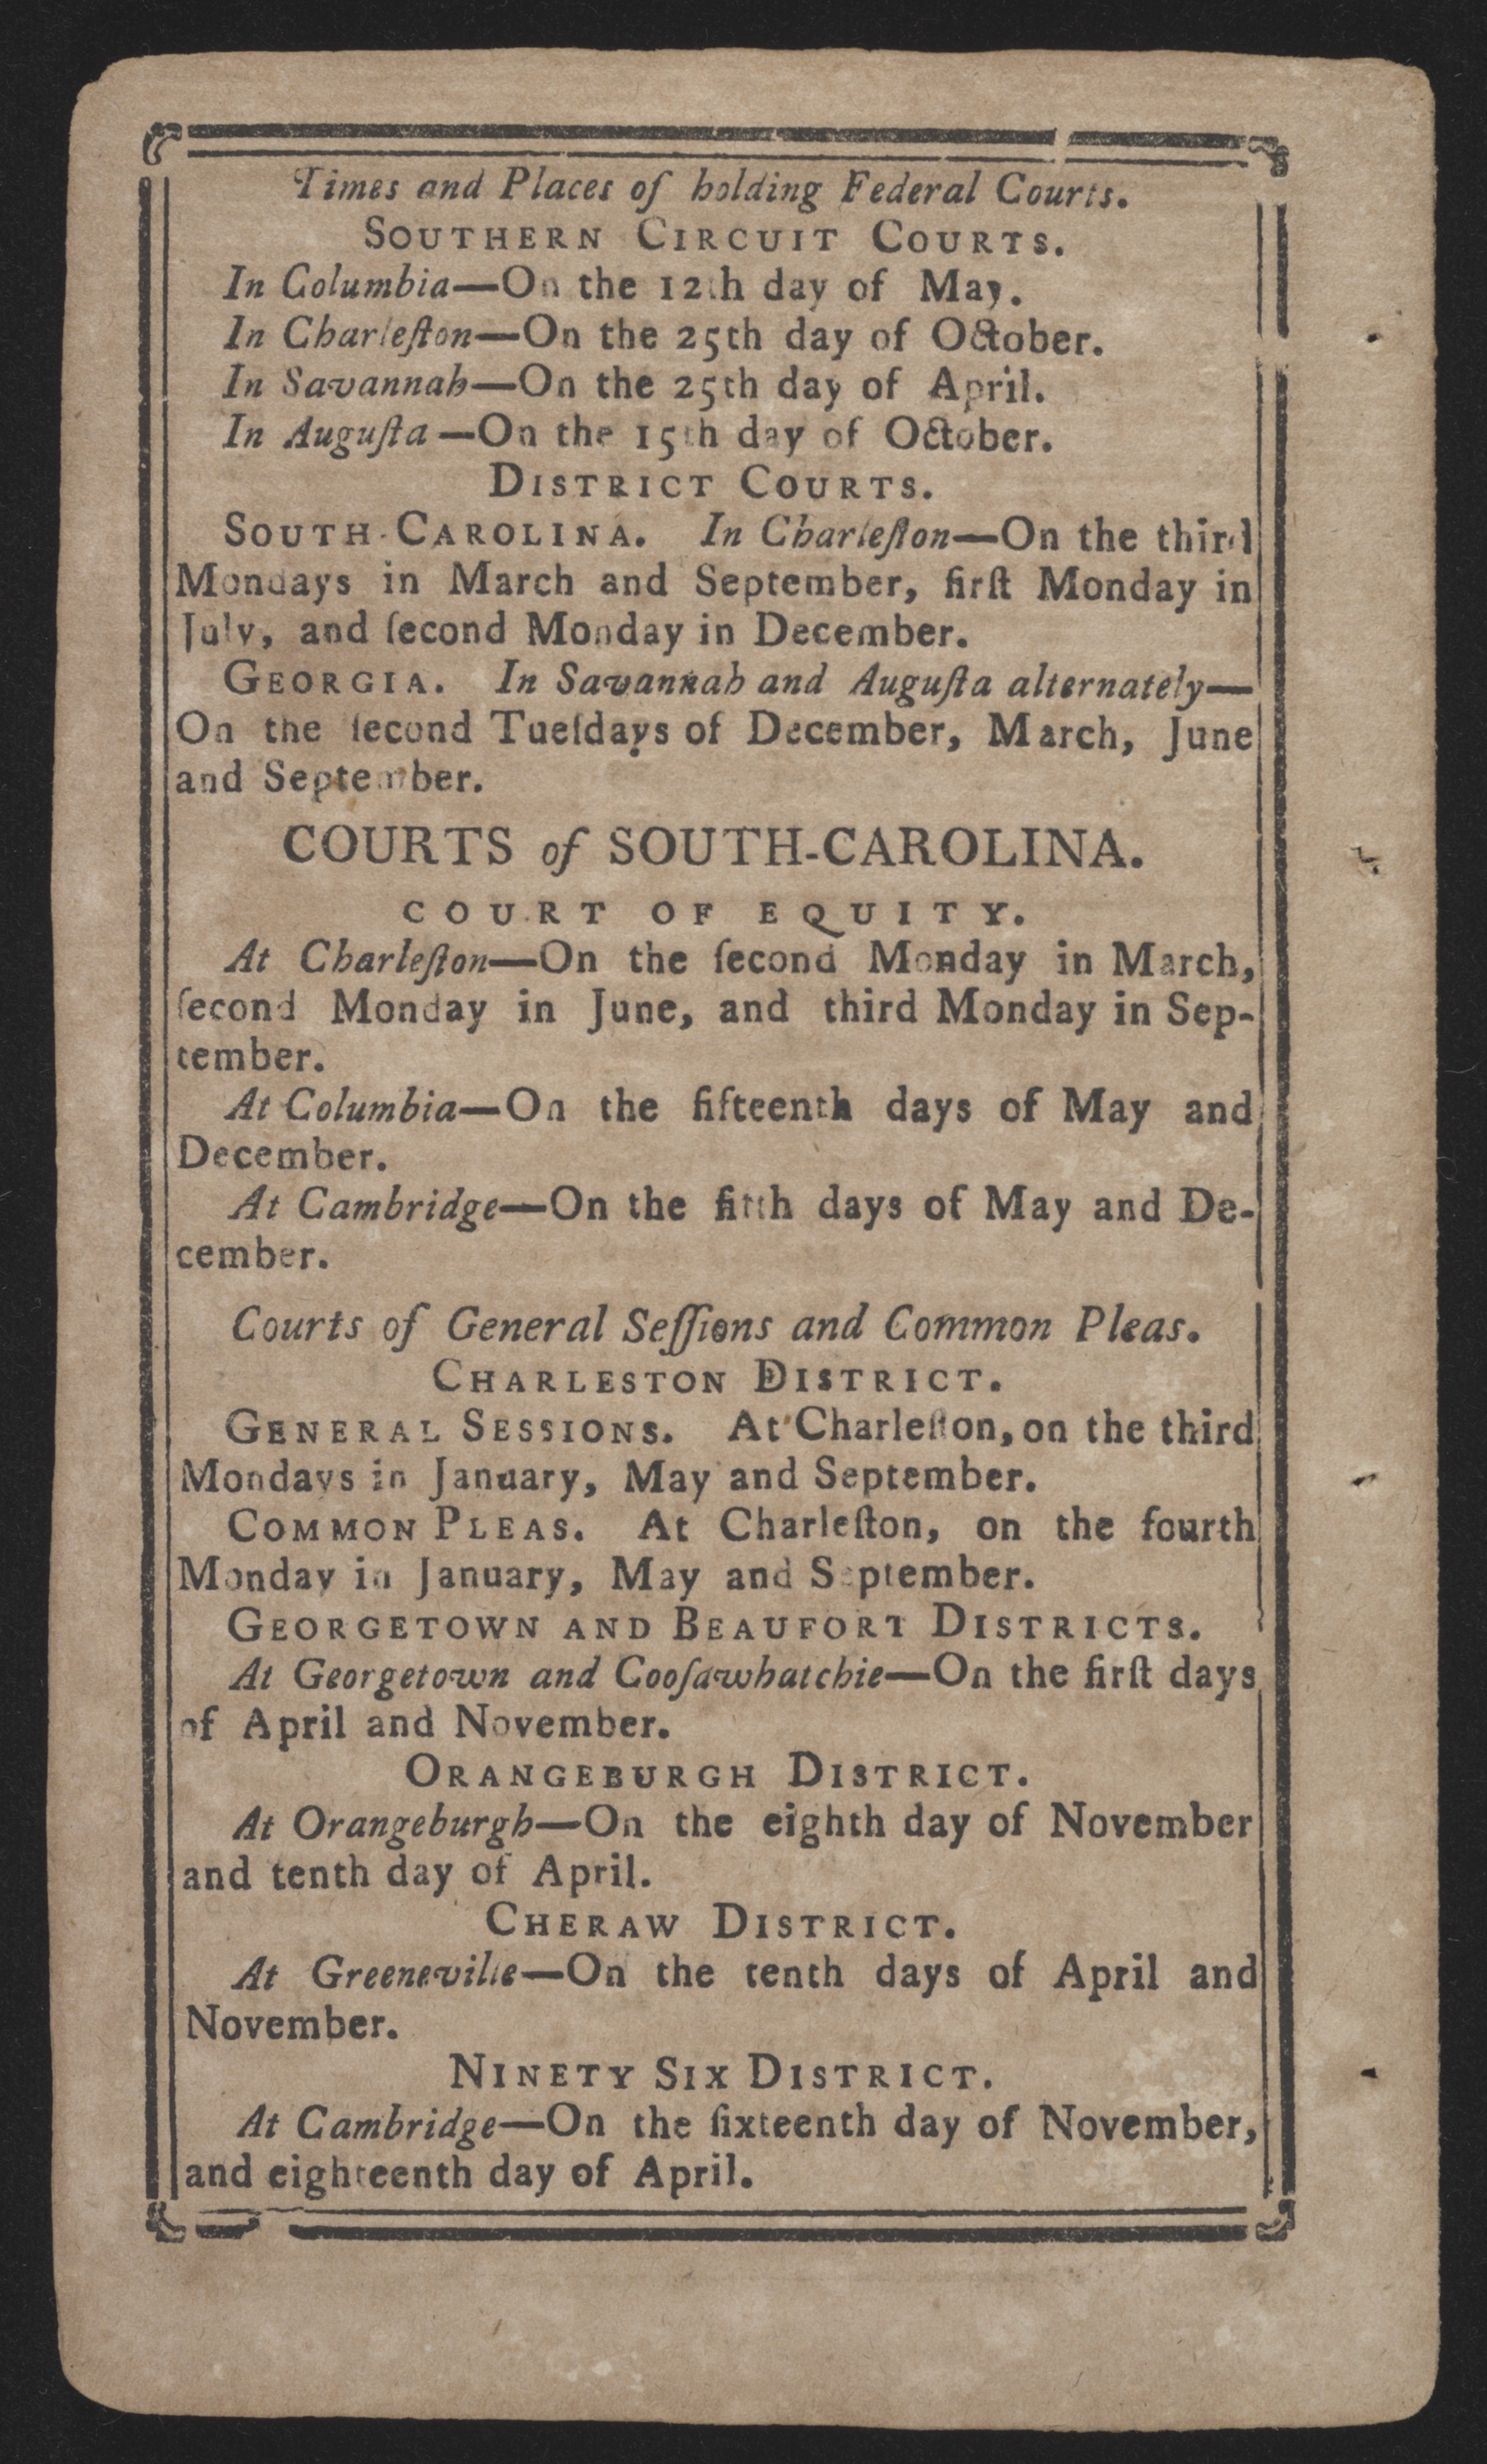 Sandy Island Plantation Journal, Volume 1, 1792, Page 43